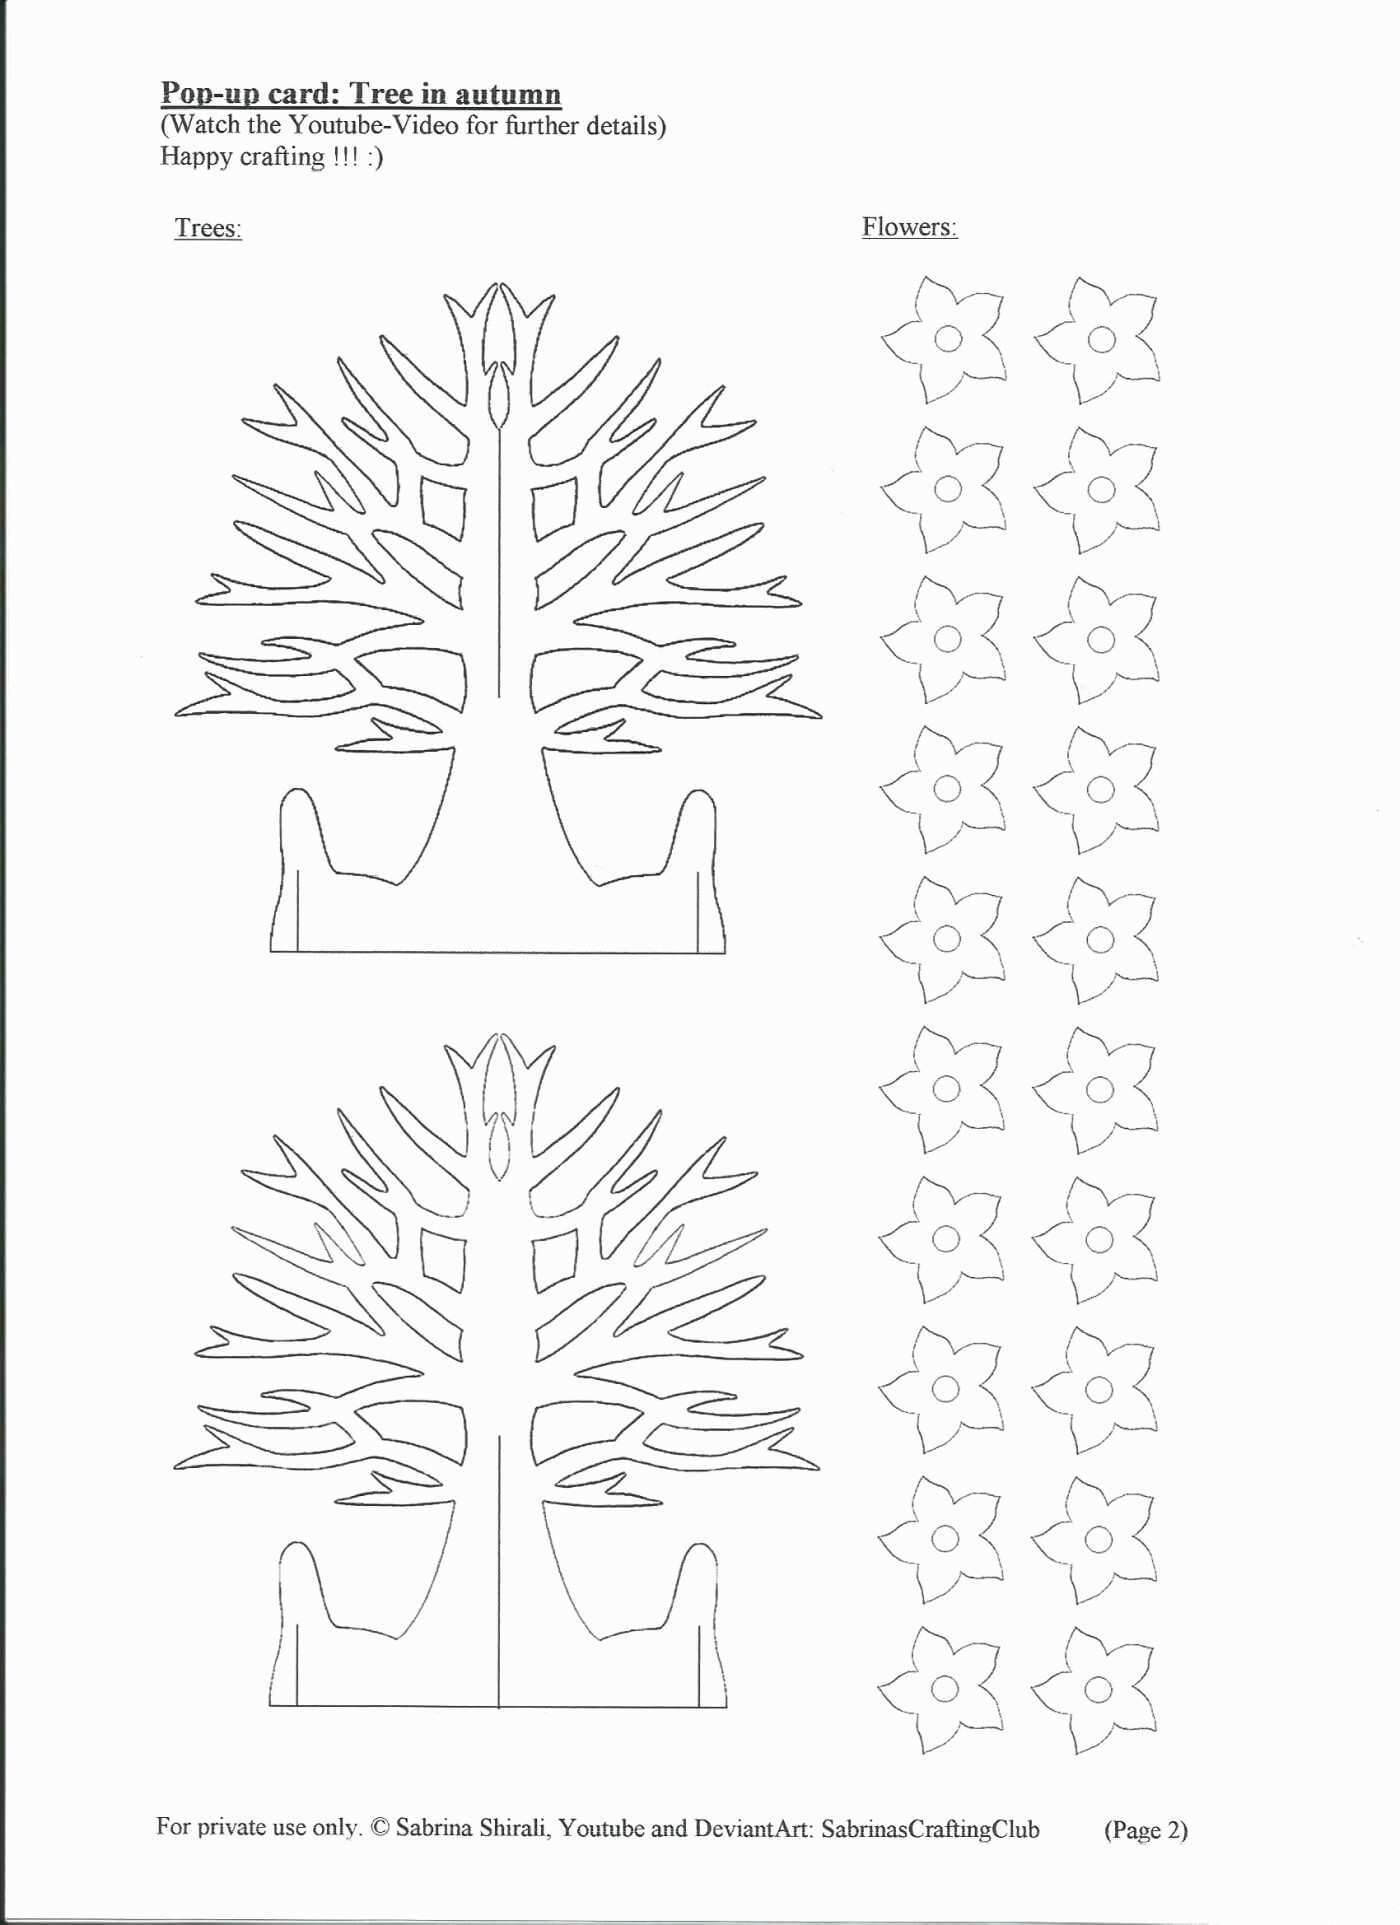 72 Free Printable Pop Up Card Templates Tree For Freepop Pertaining To Pop Up Tree Card Template